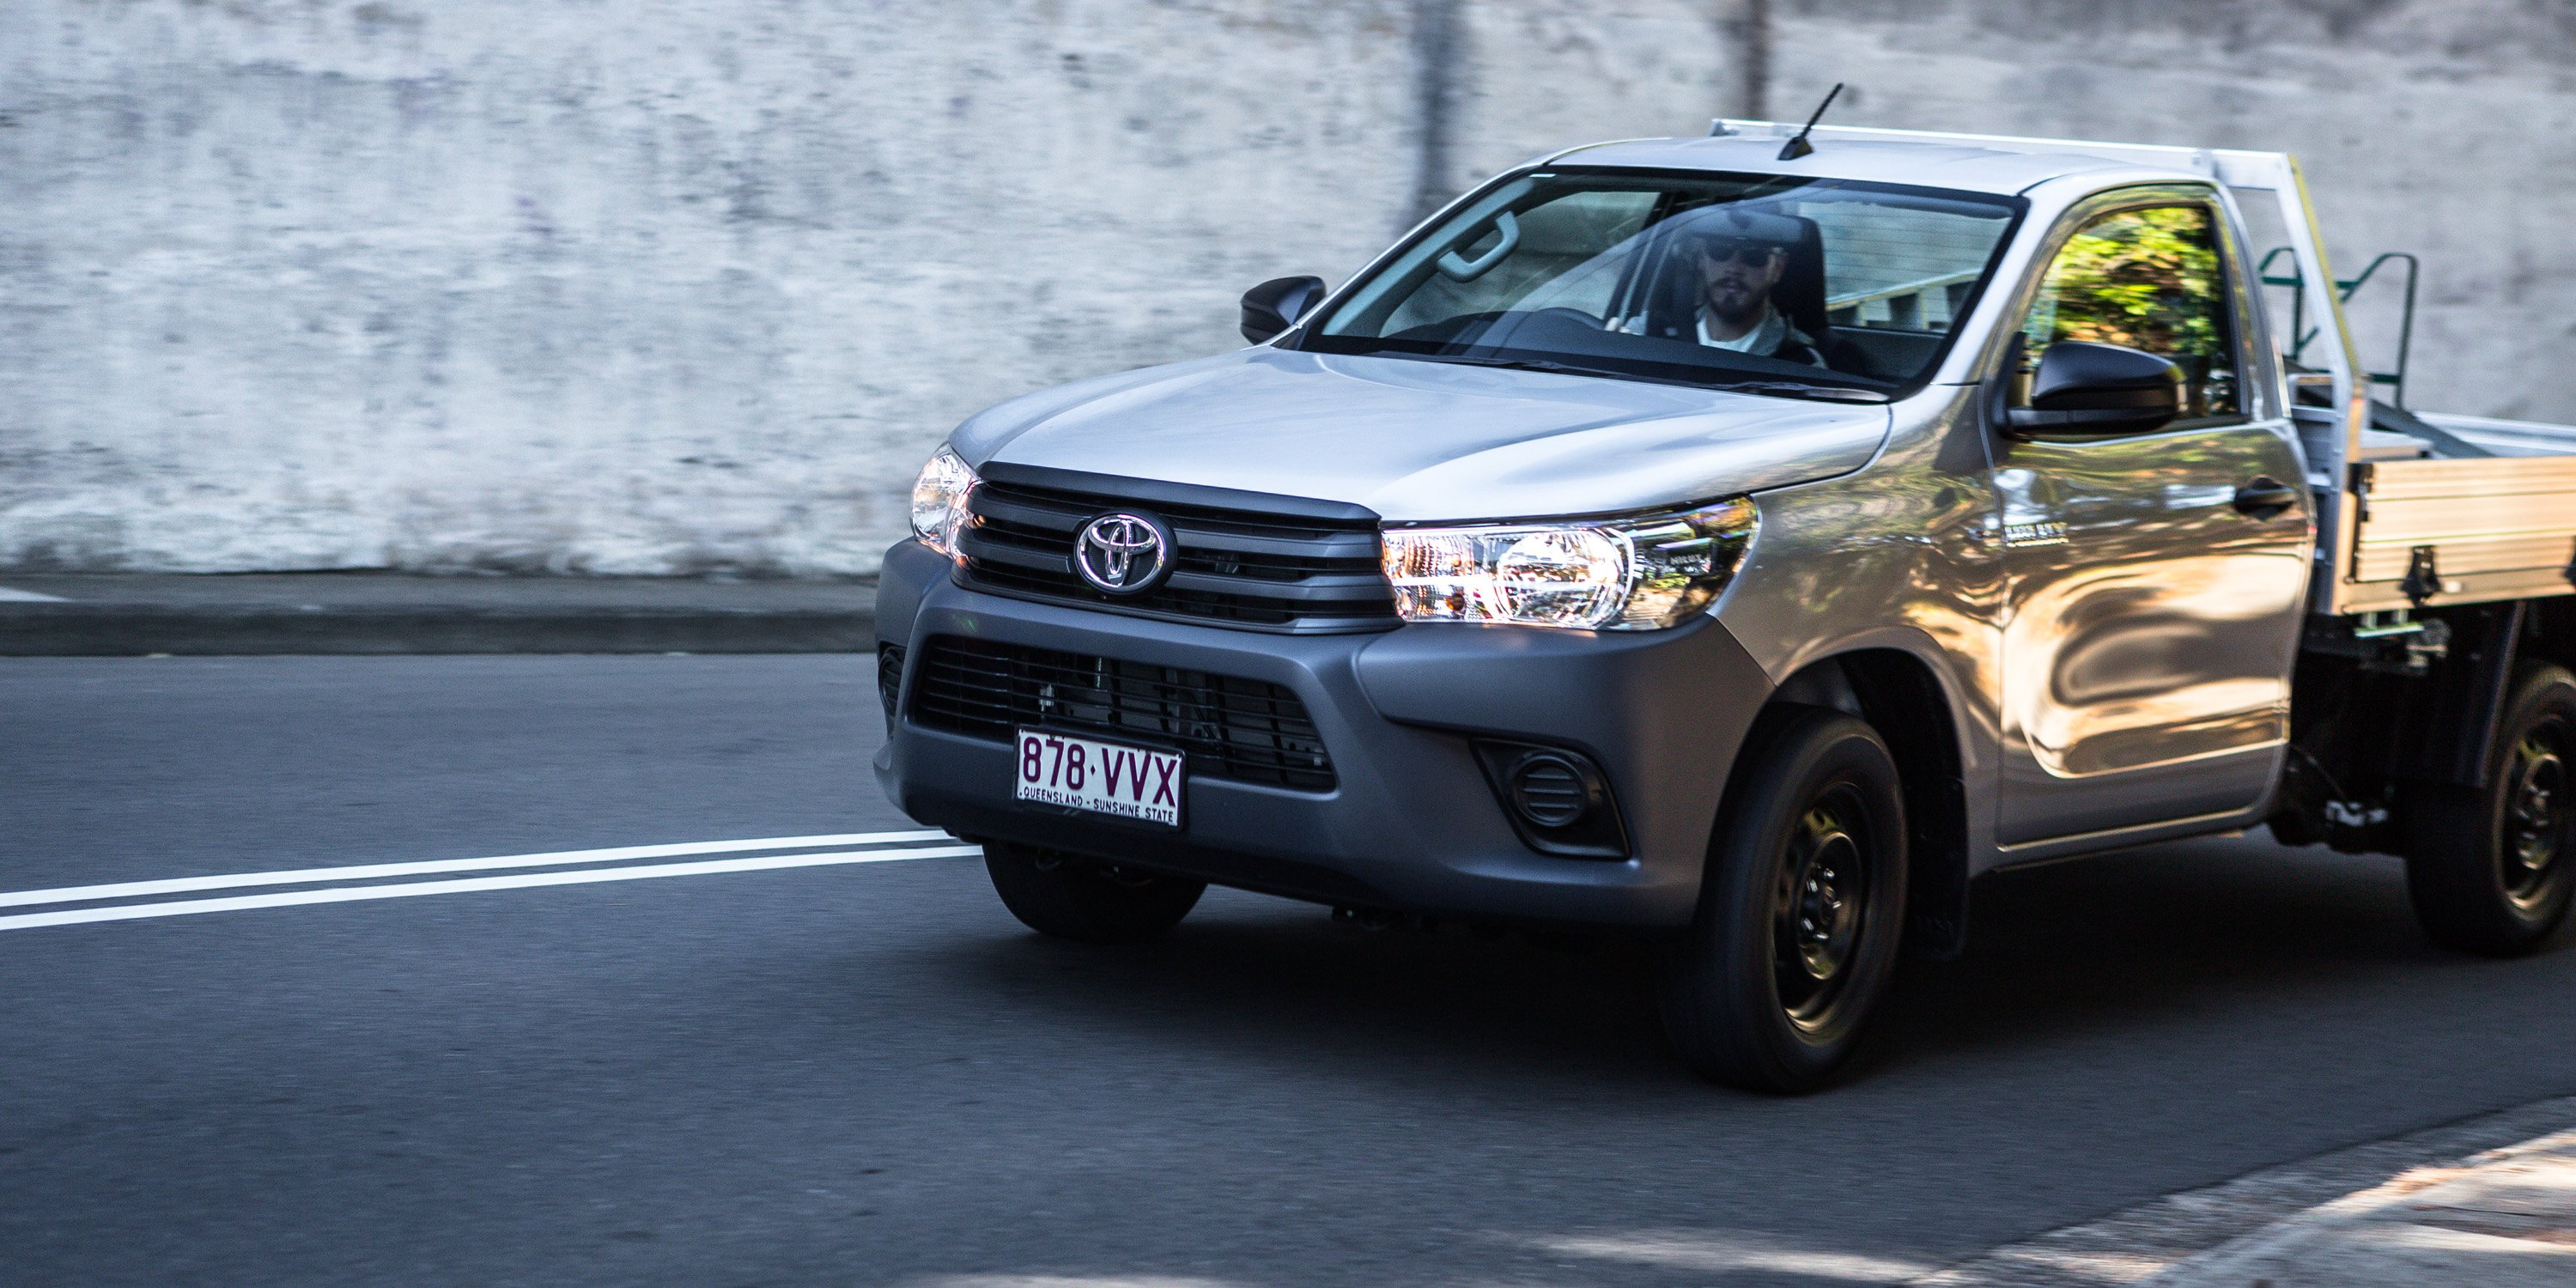 2016 Toyota HiLux Workmate 4x2 Single-Cab Review | CarAdvice